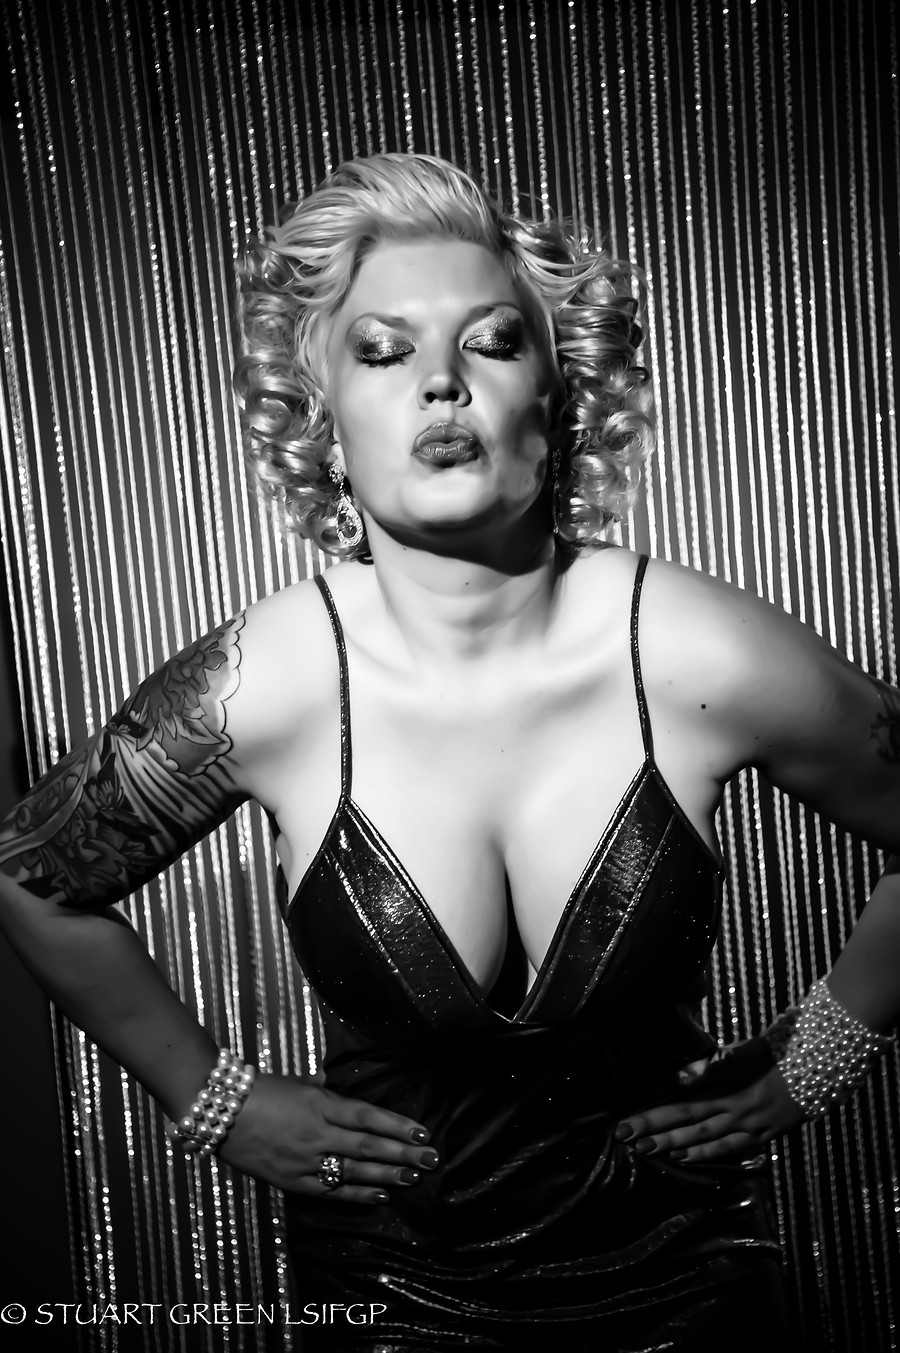 marilyn monroe style shoot / Photography by Stuart Green-Photography, Model Lelly D / Uploaded 9th July 2014 @ 09:24 PM